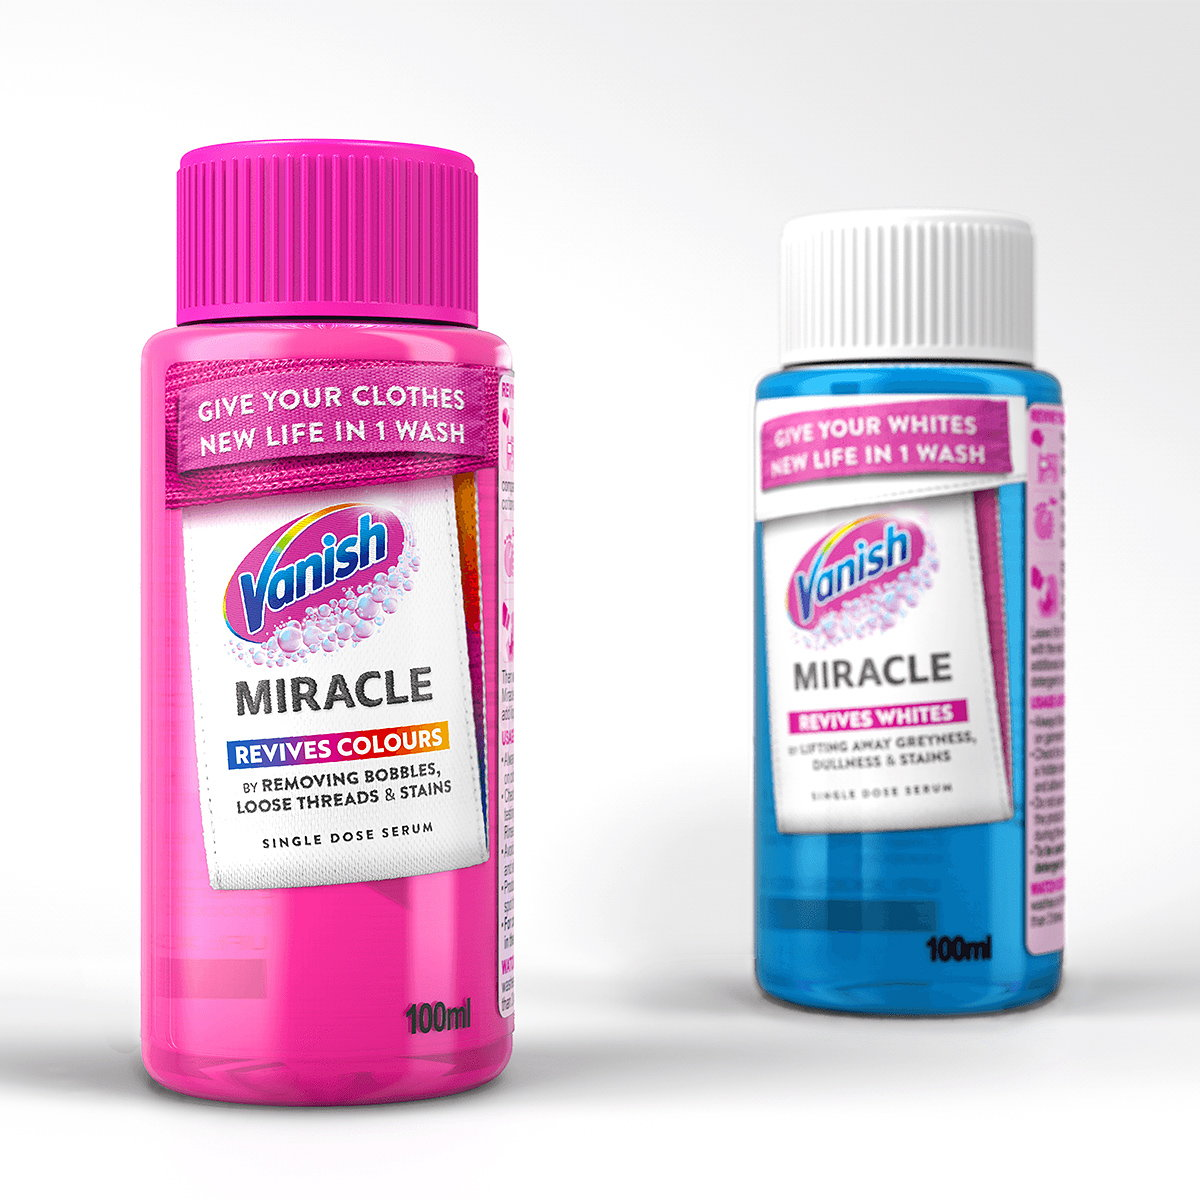 RB Designs Packaging and Brand Experience for 'Vanish Miracle Revives Colours'